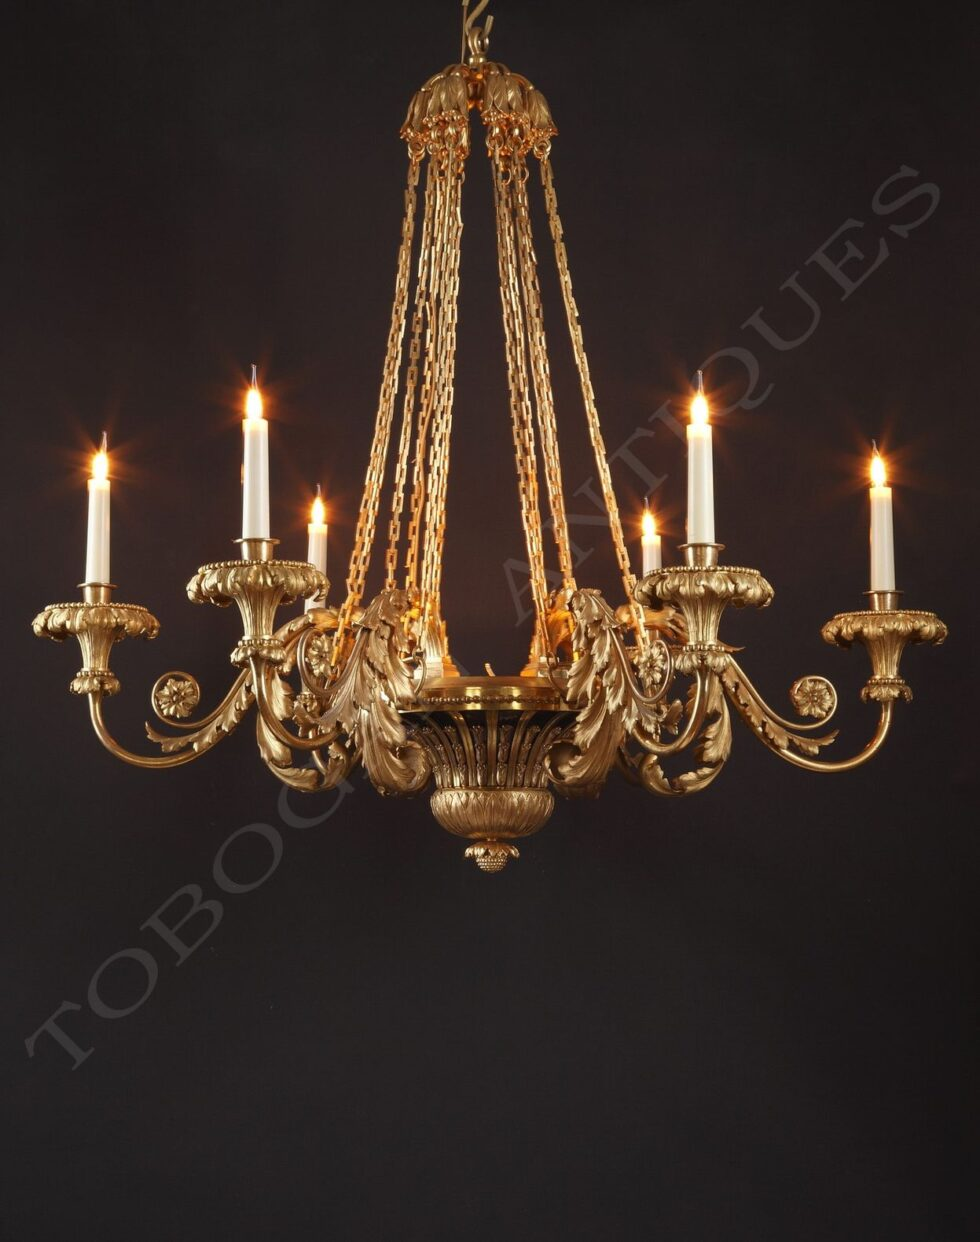 H. Dasson <br/> Chandelier with Acanthus